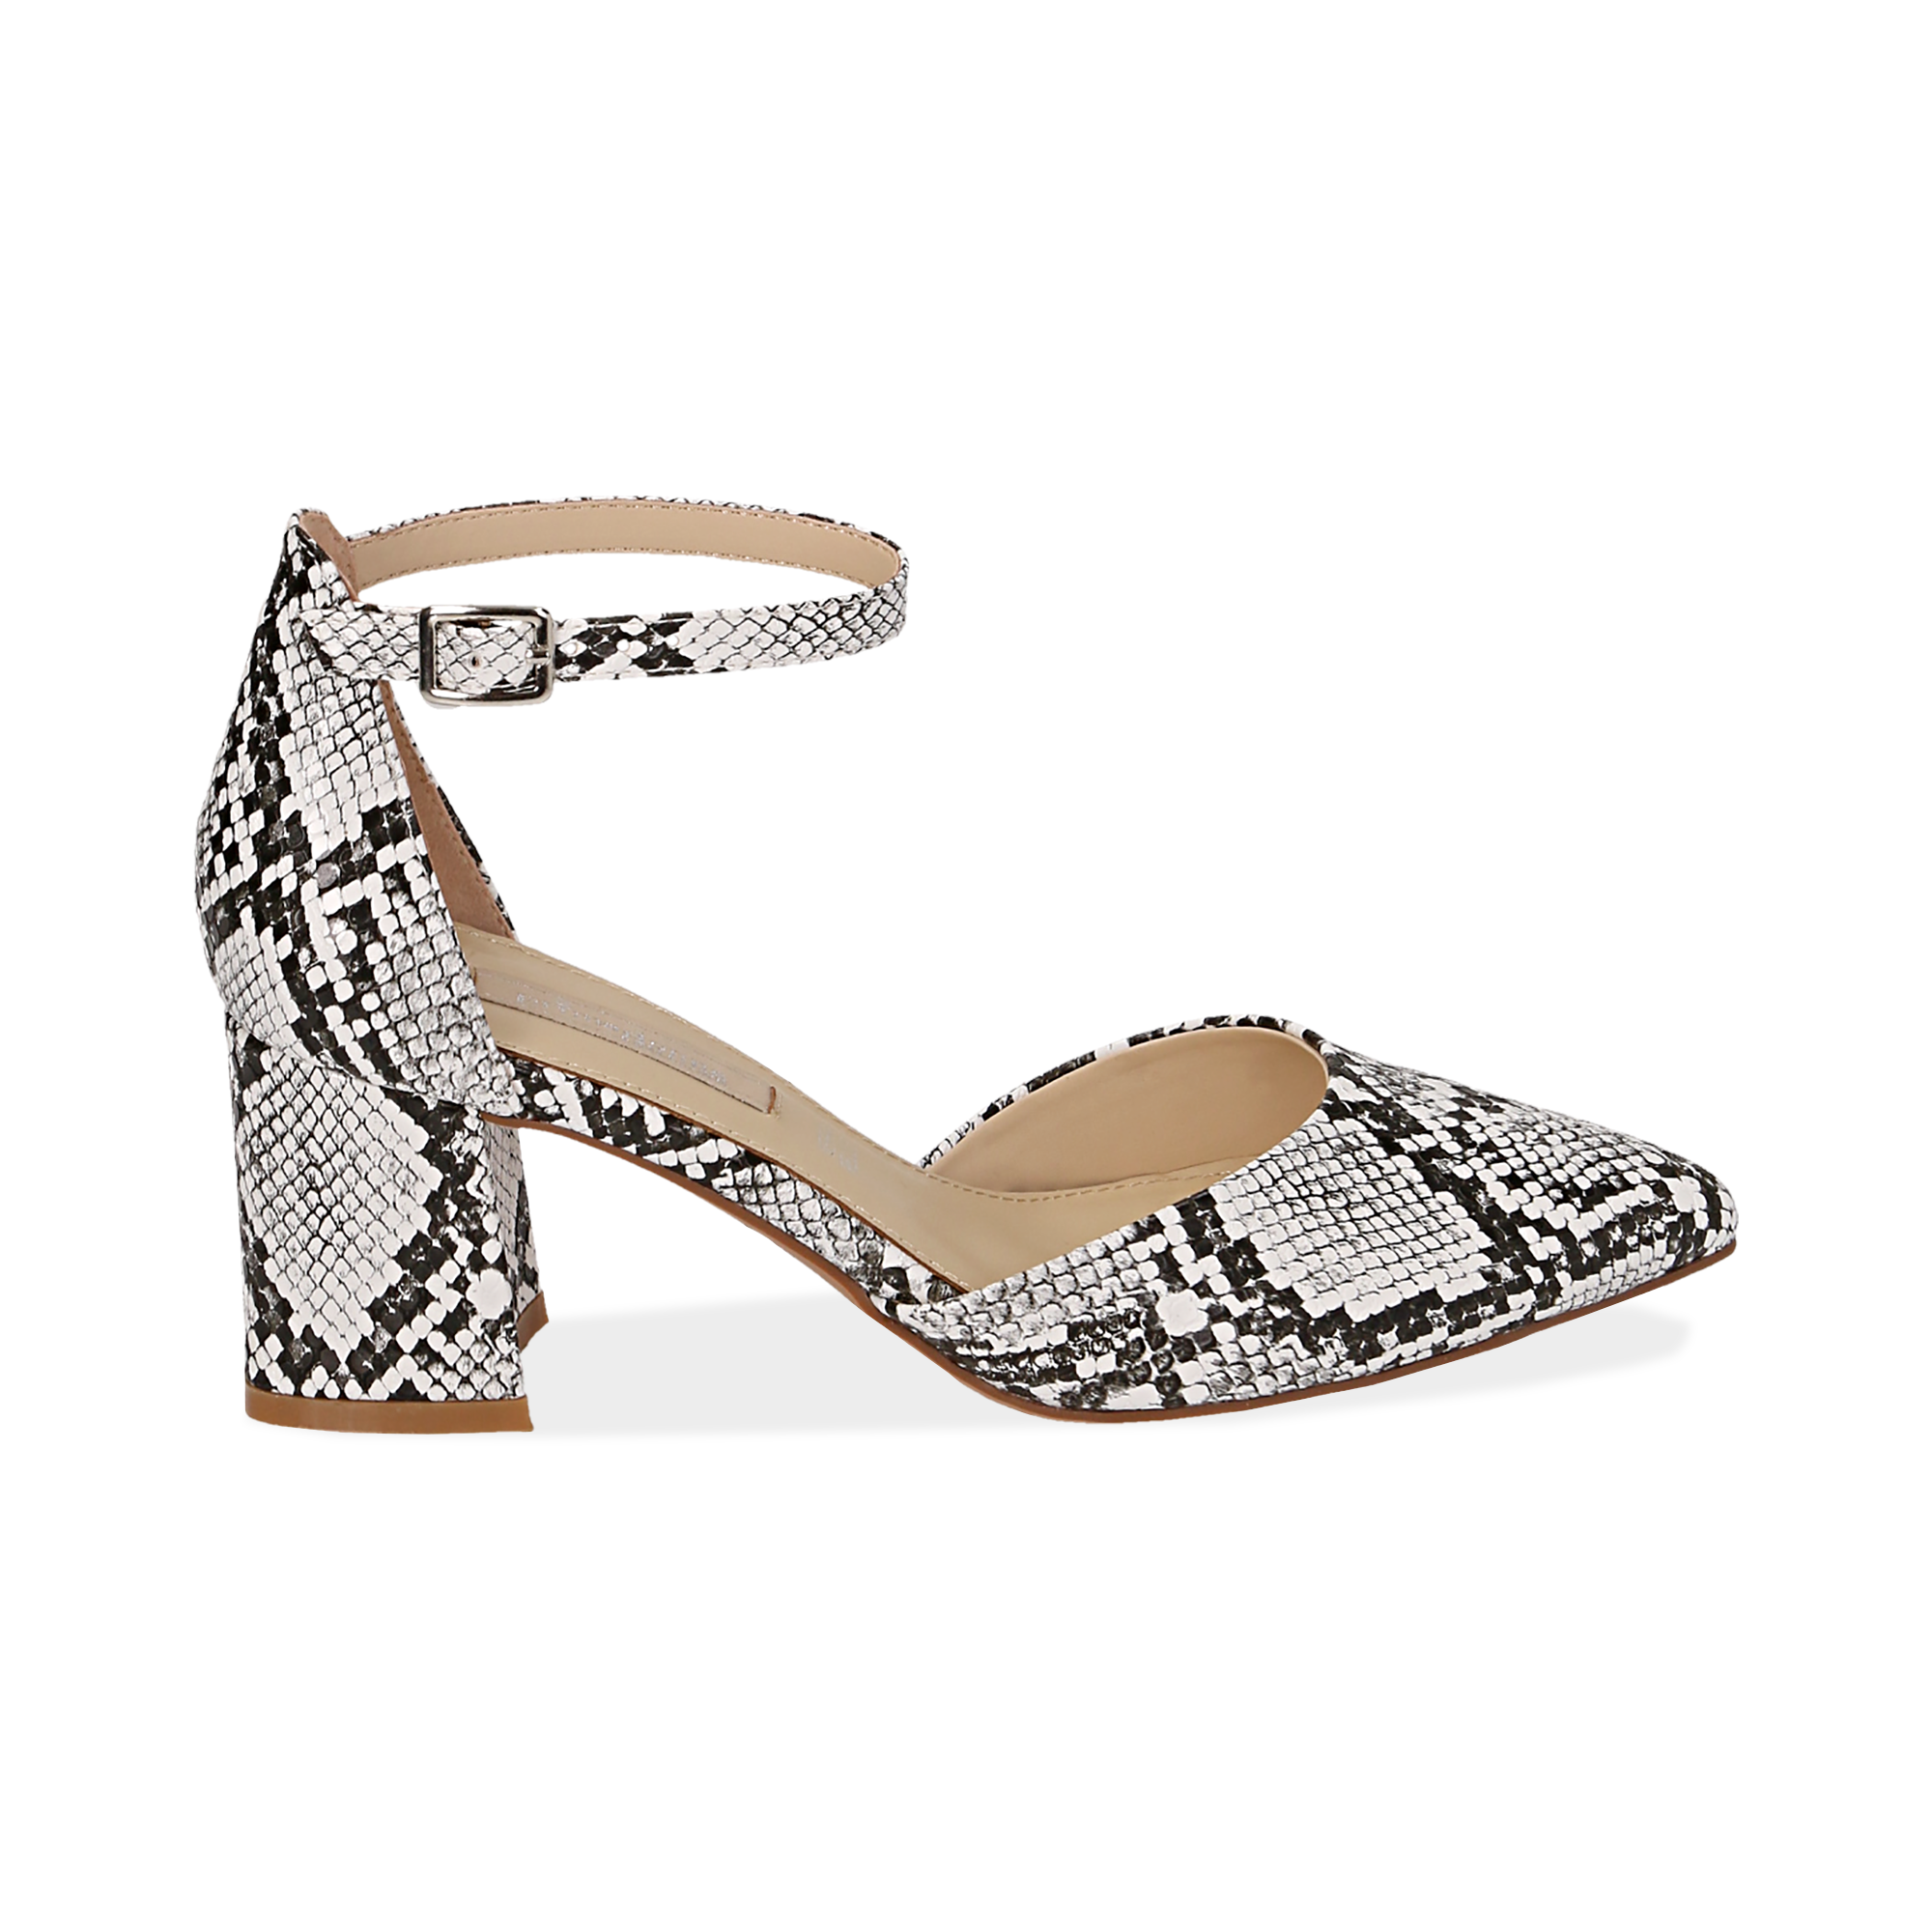 Décolleté con cinturino bianco/nere in eco-pelle snake print, tacco 6,50